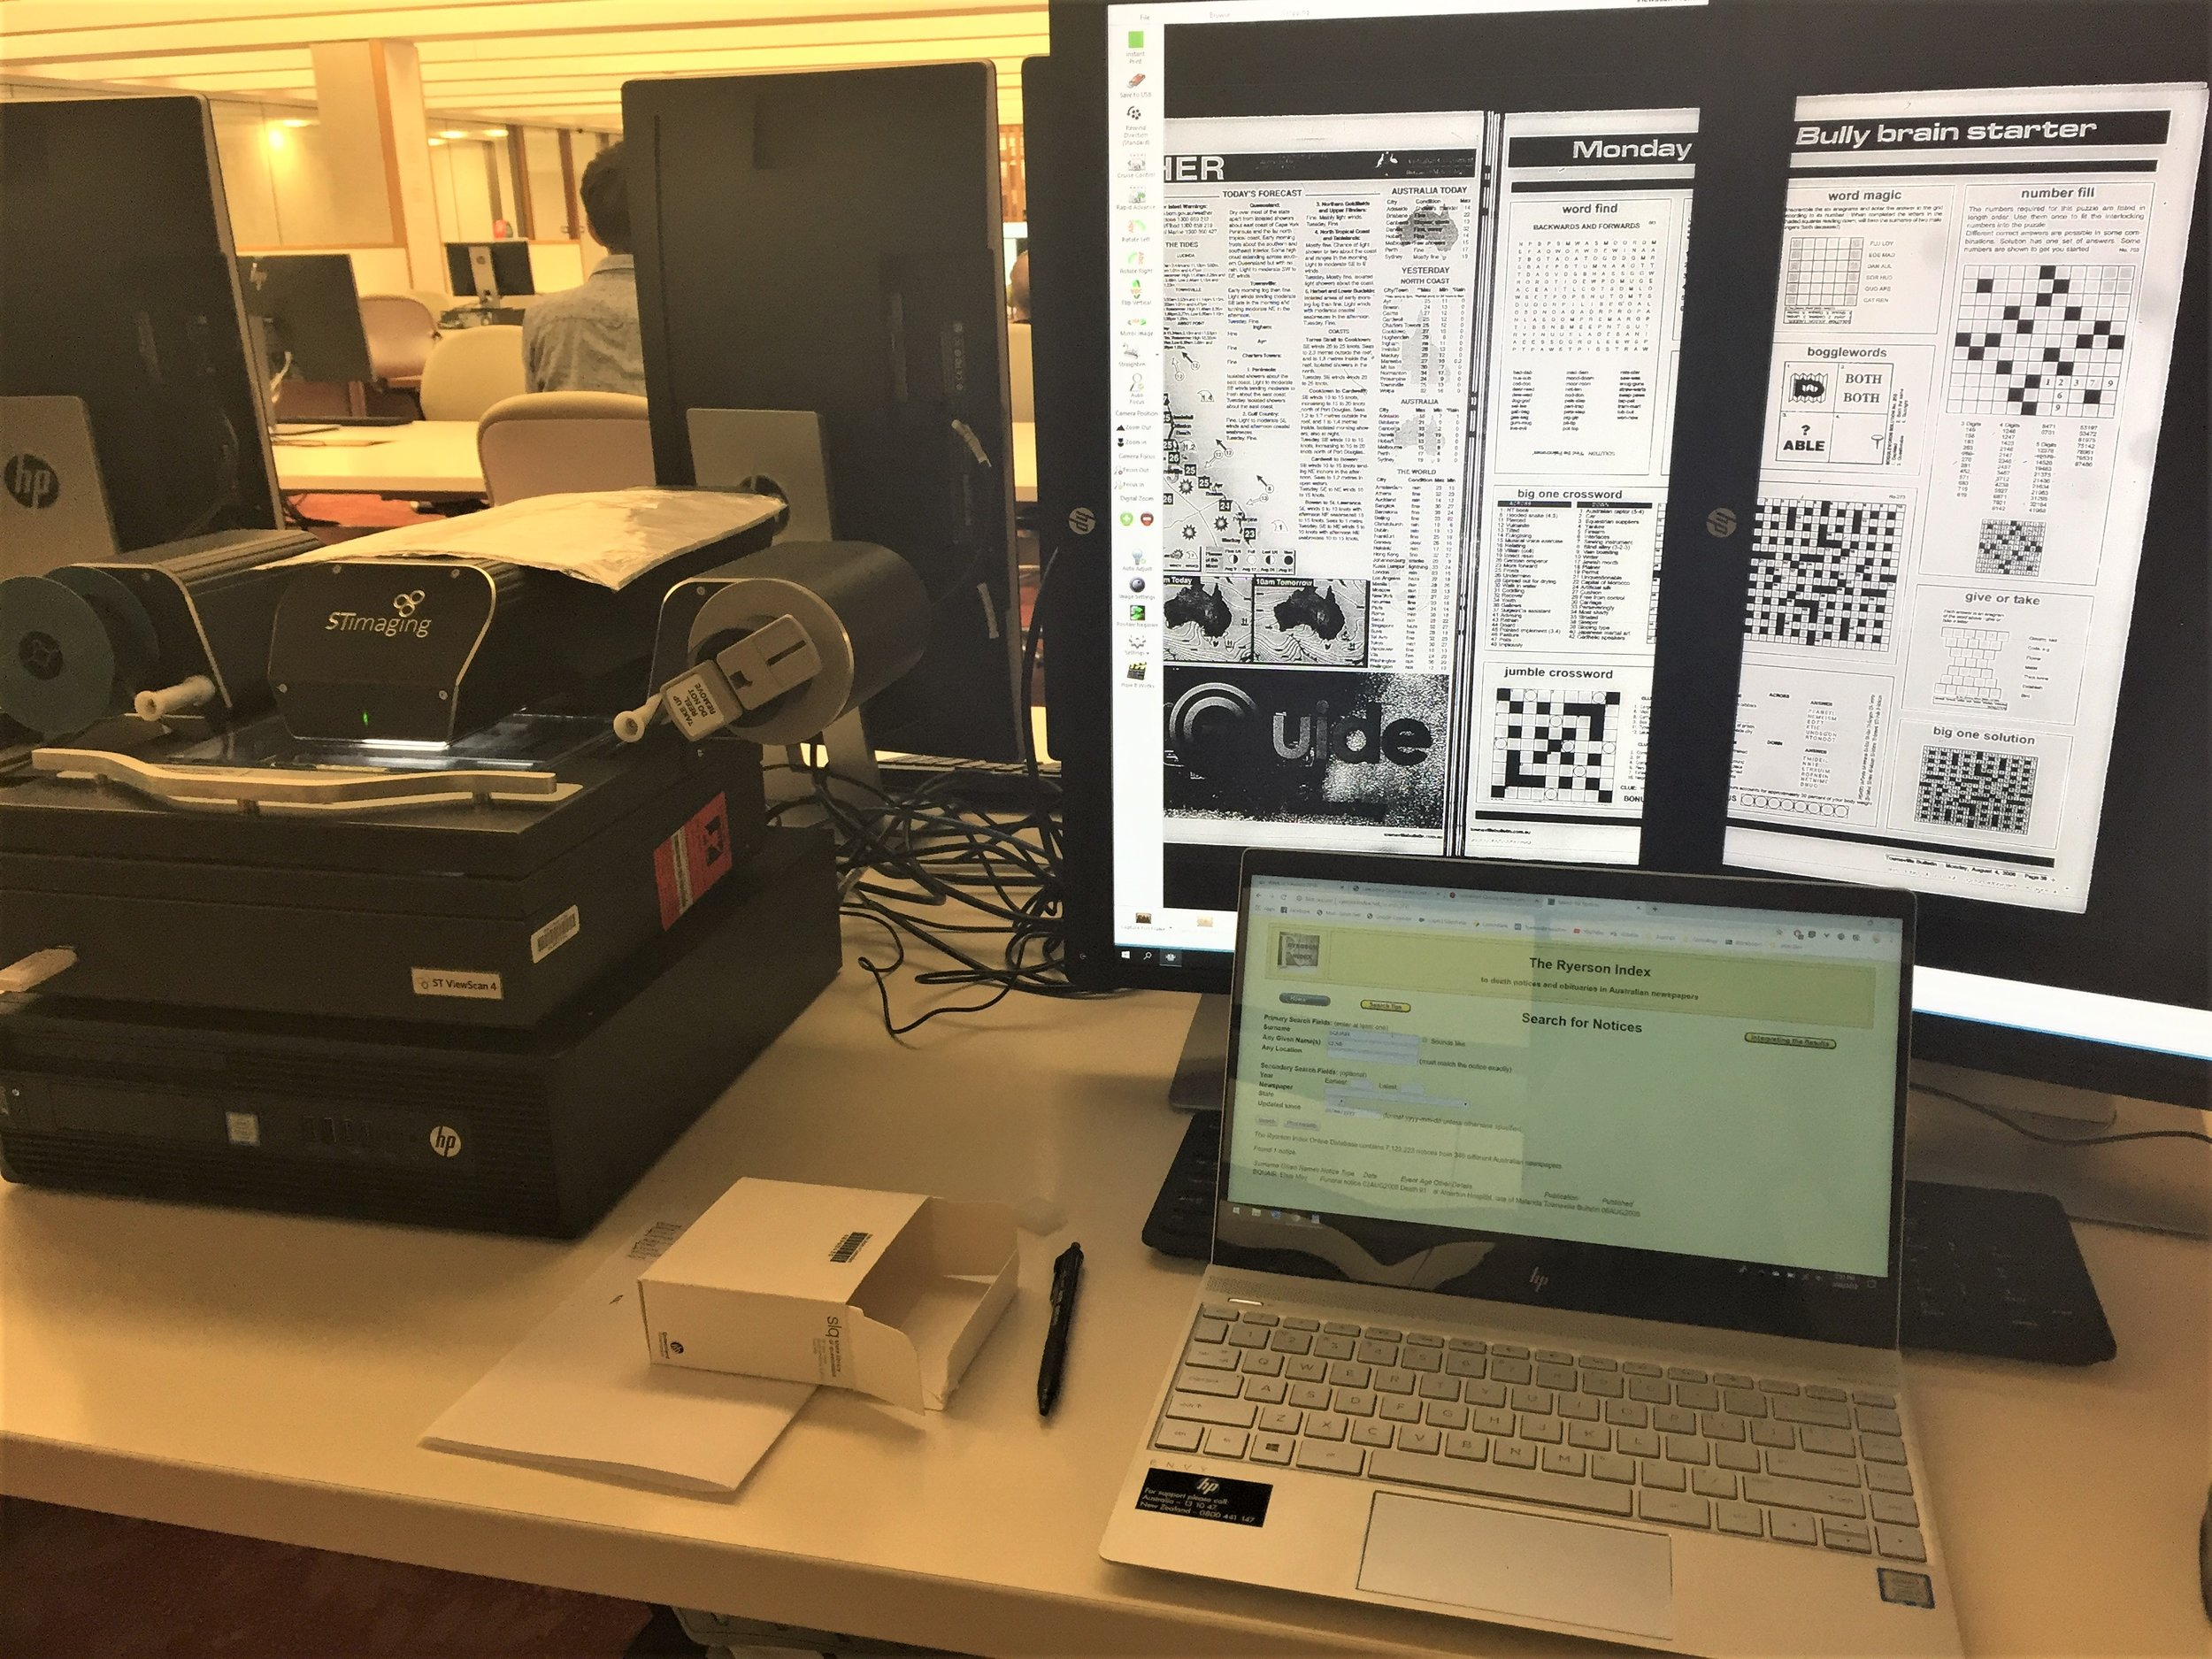 My scanning setup showing the ST ViewScan 4 on the left, dual monitors and laptop, 5 August 2019.